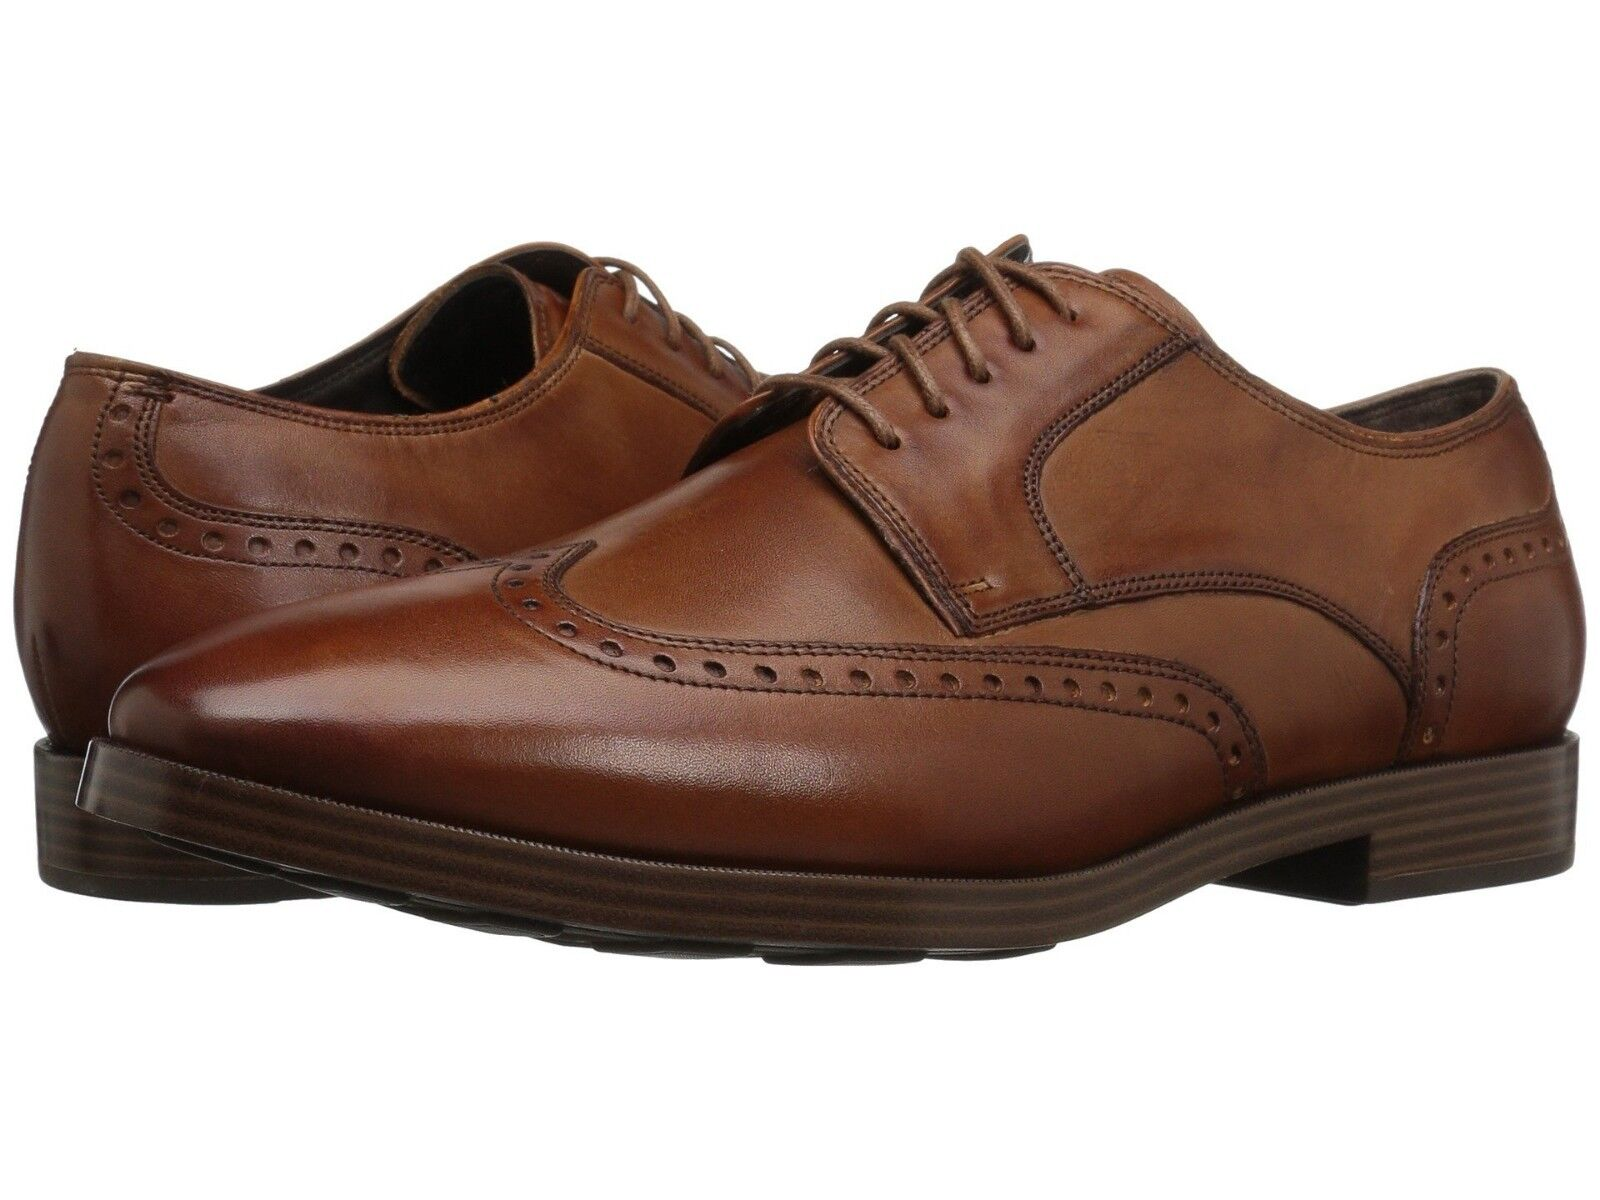 Cole Haan Men's Jay Grand Ox Wing shoes British Tan C23775 US Sizes